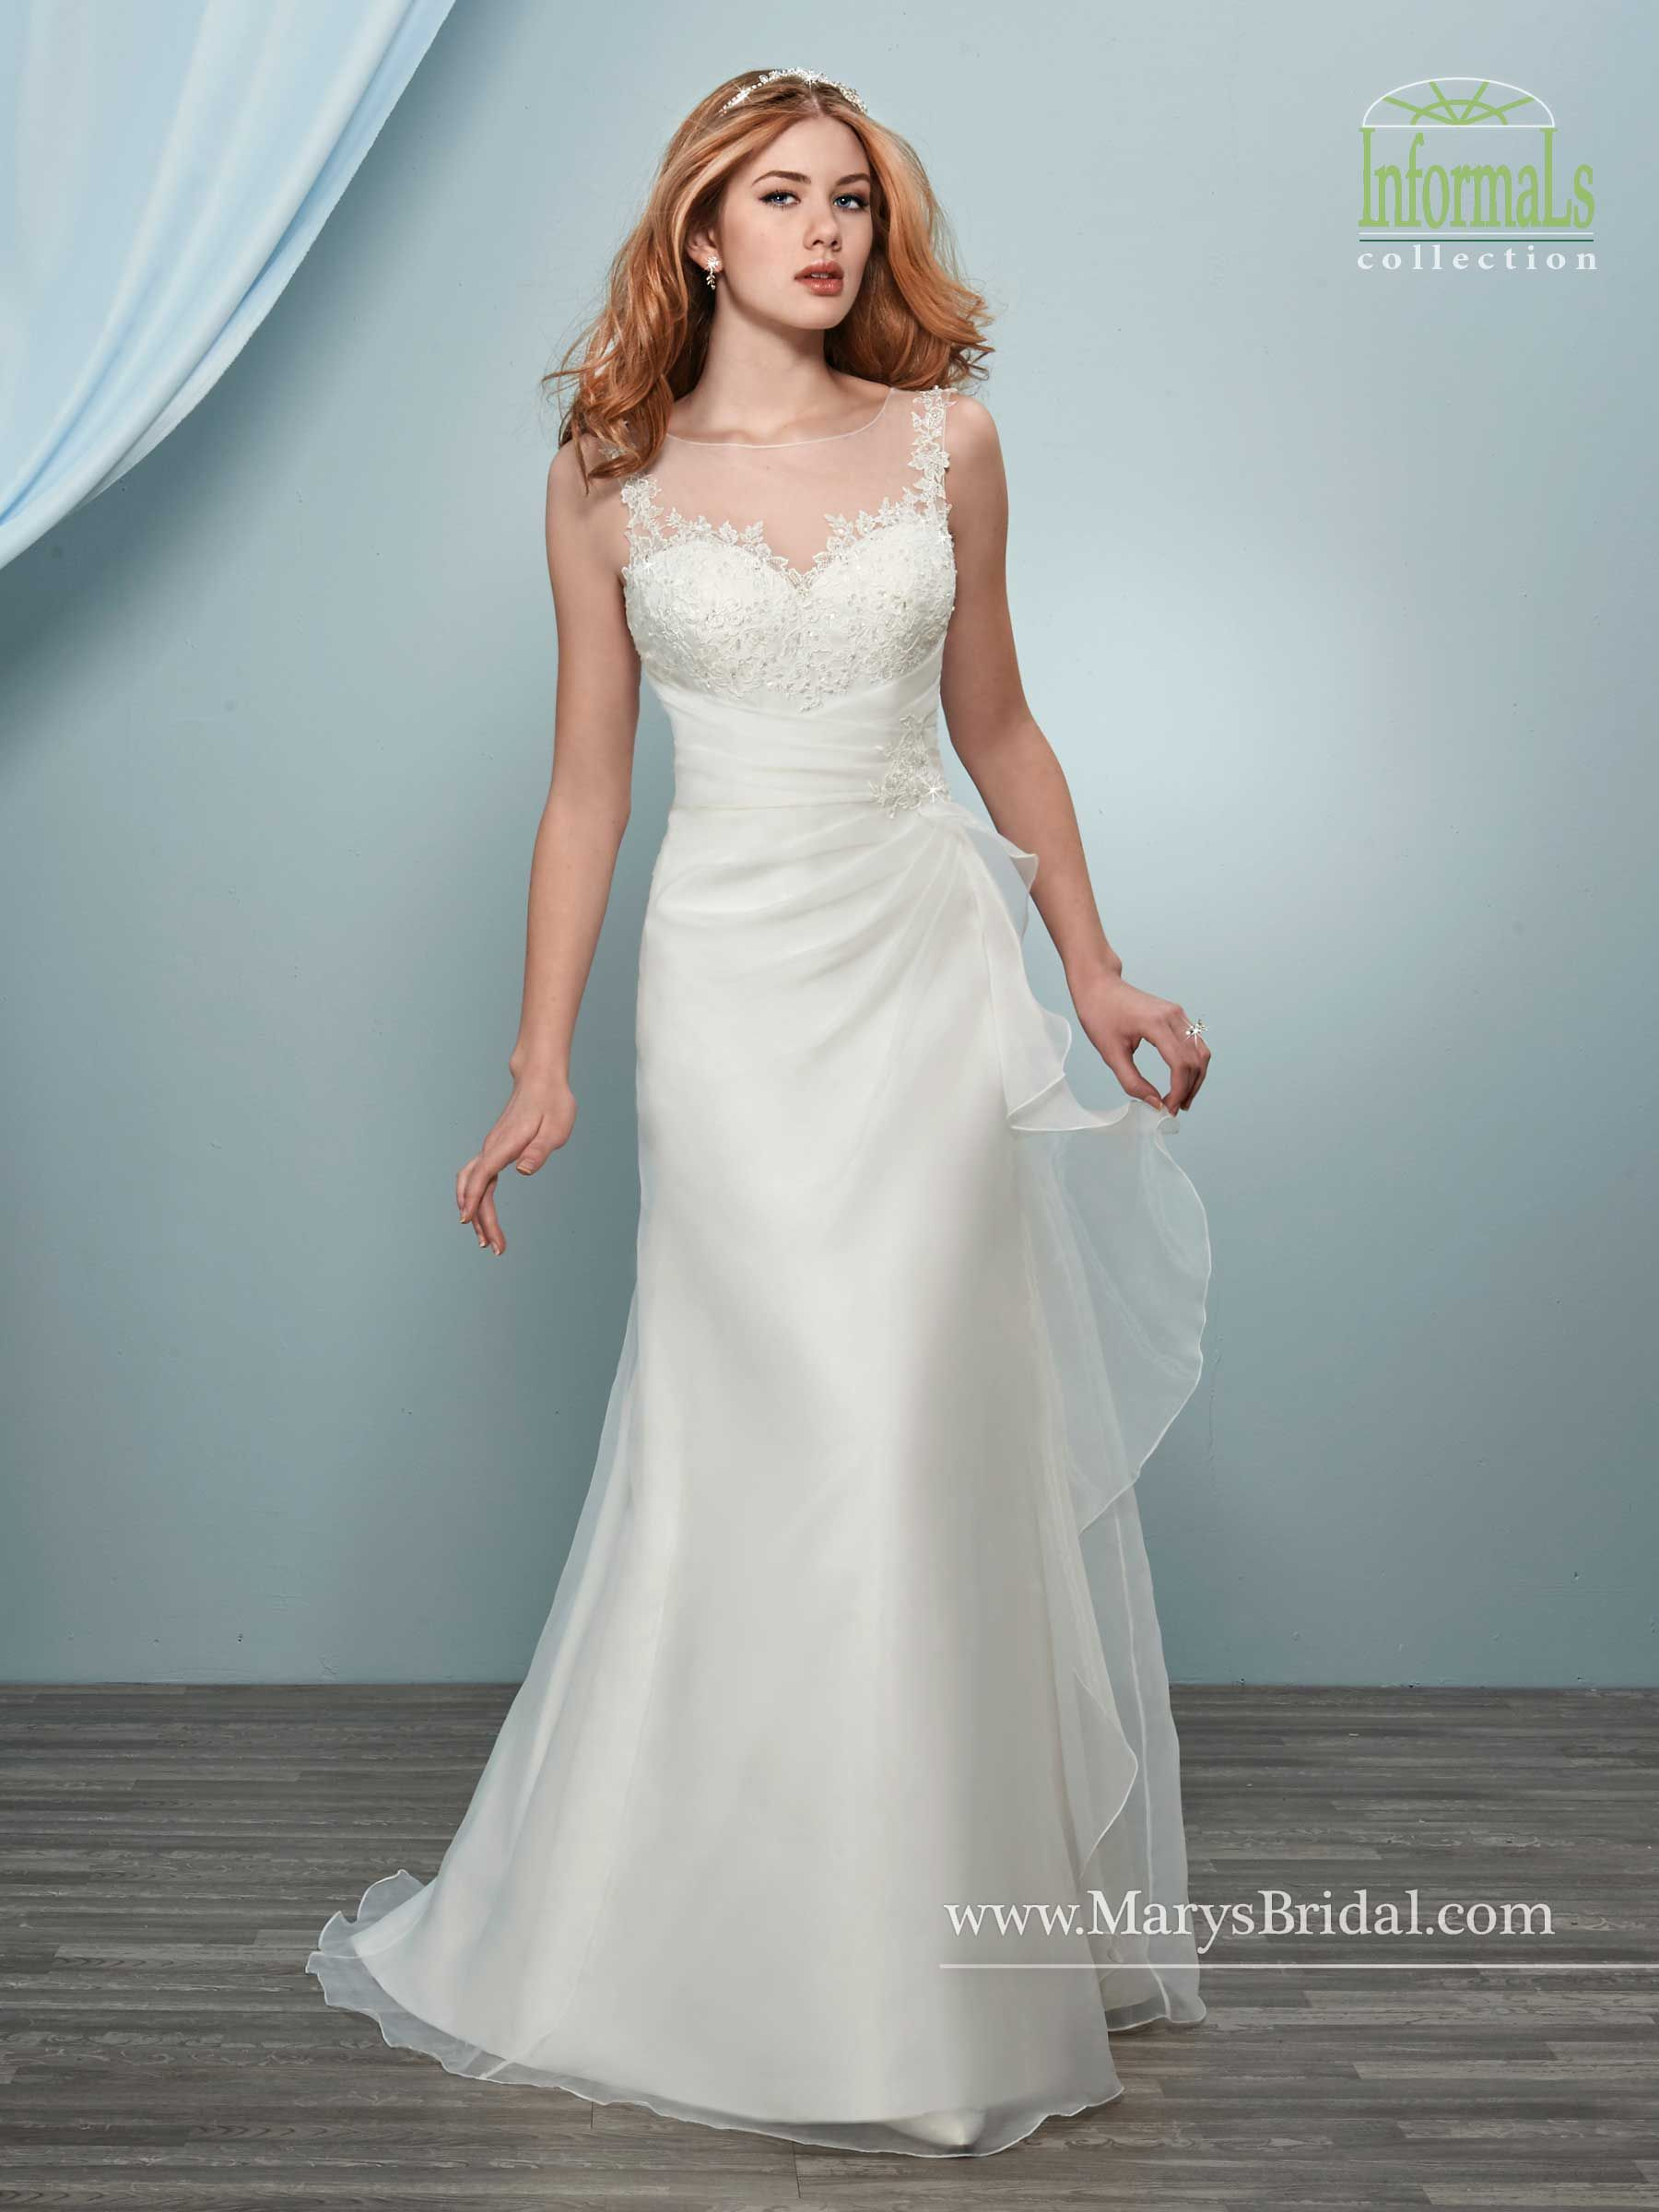 F16-2632 | Mary\'s Bridal Gowns | Pinterest | Wedding dress, Vintage ...